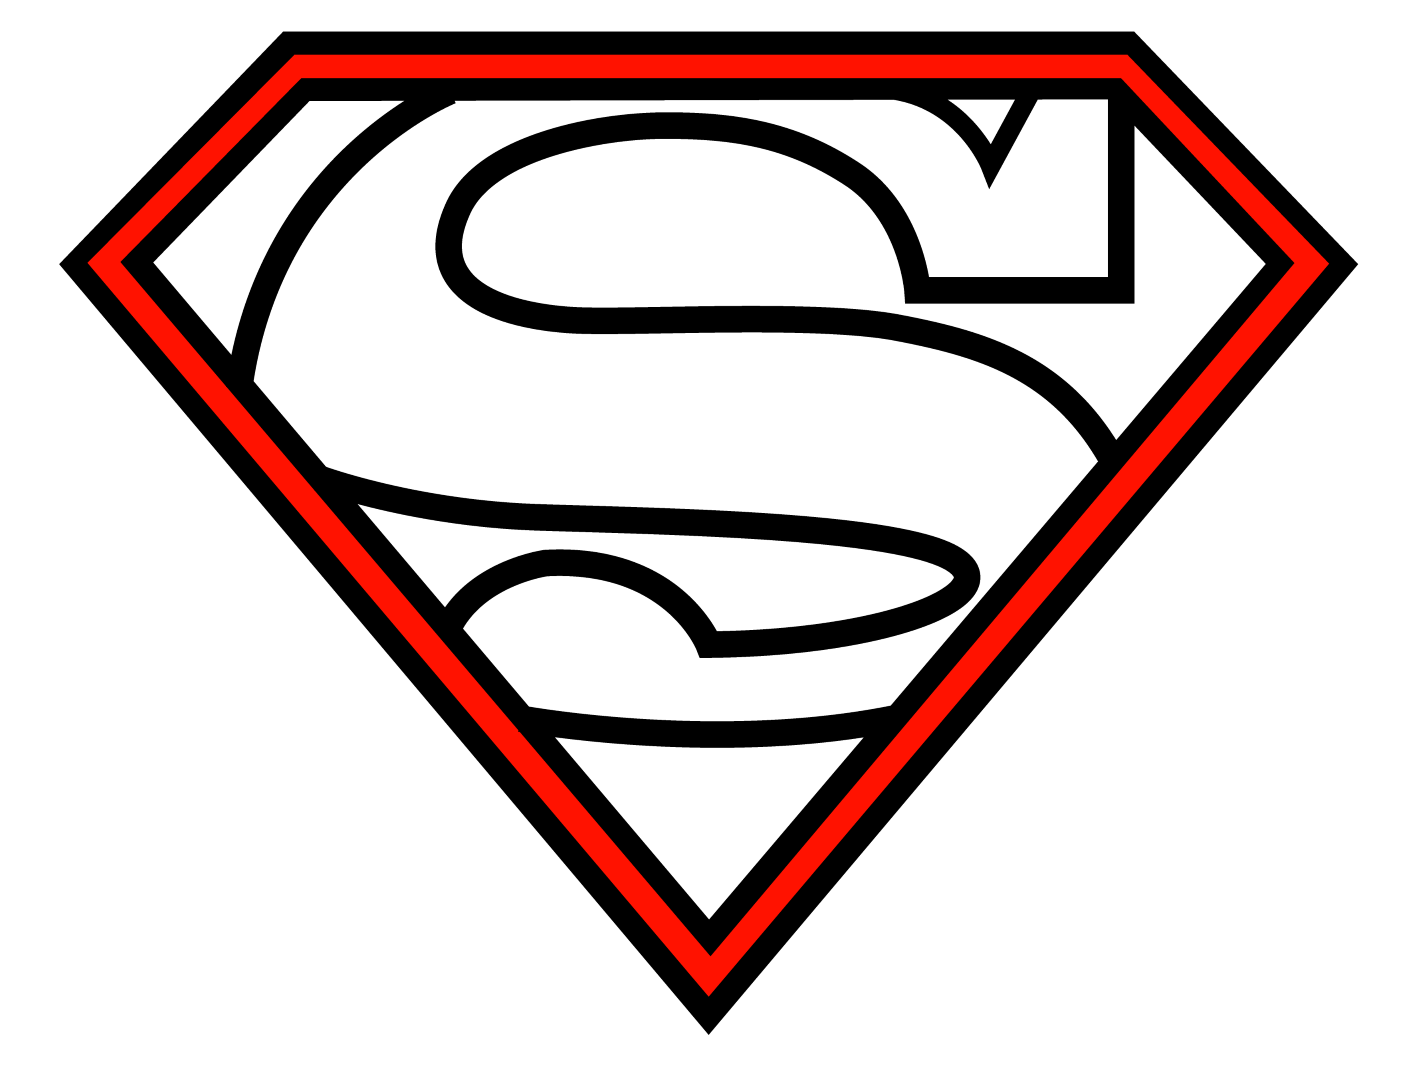 Diamond clipart superman The Superman Draw Logo To